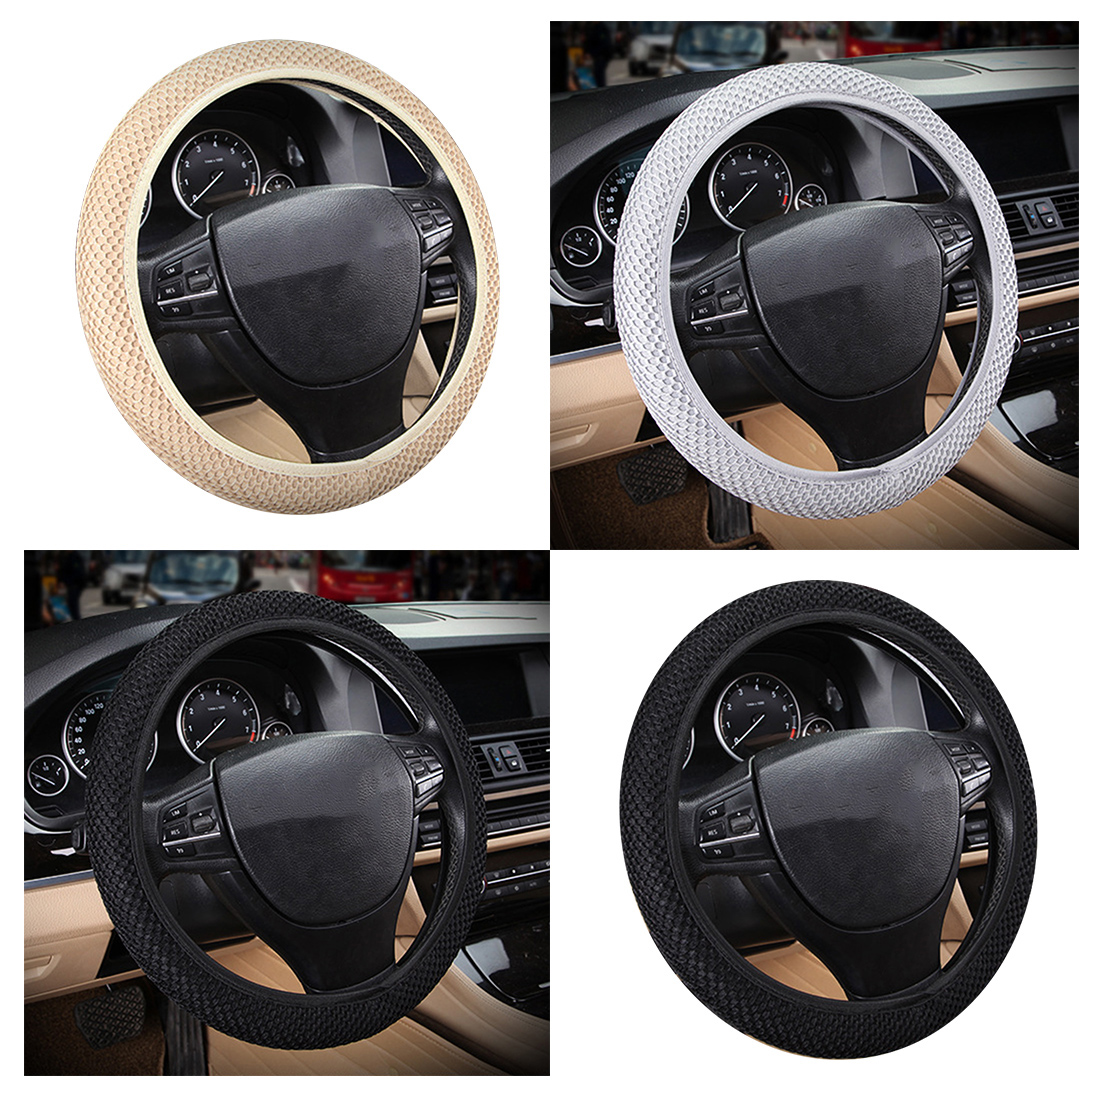 Dewtreetali Universal Car Steering Wheel Cover Breathable Sandwich Fabric Steering Wheel Protector Four Seasons Car Styling